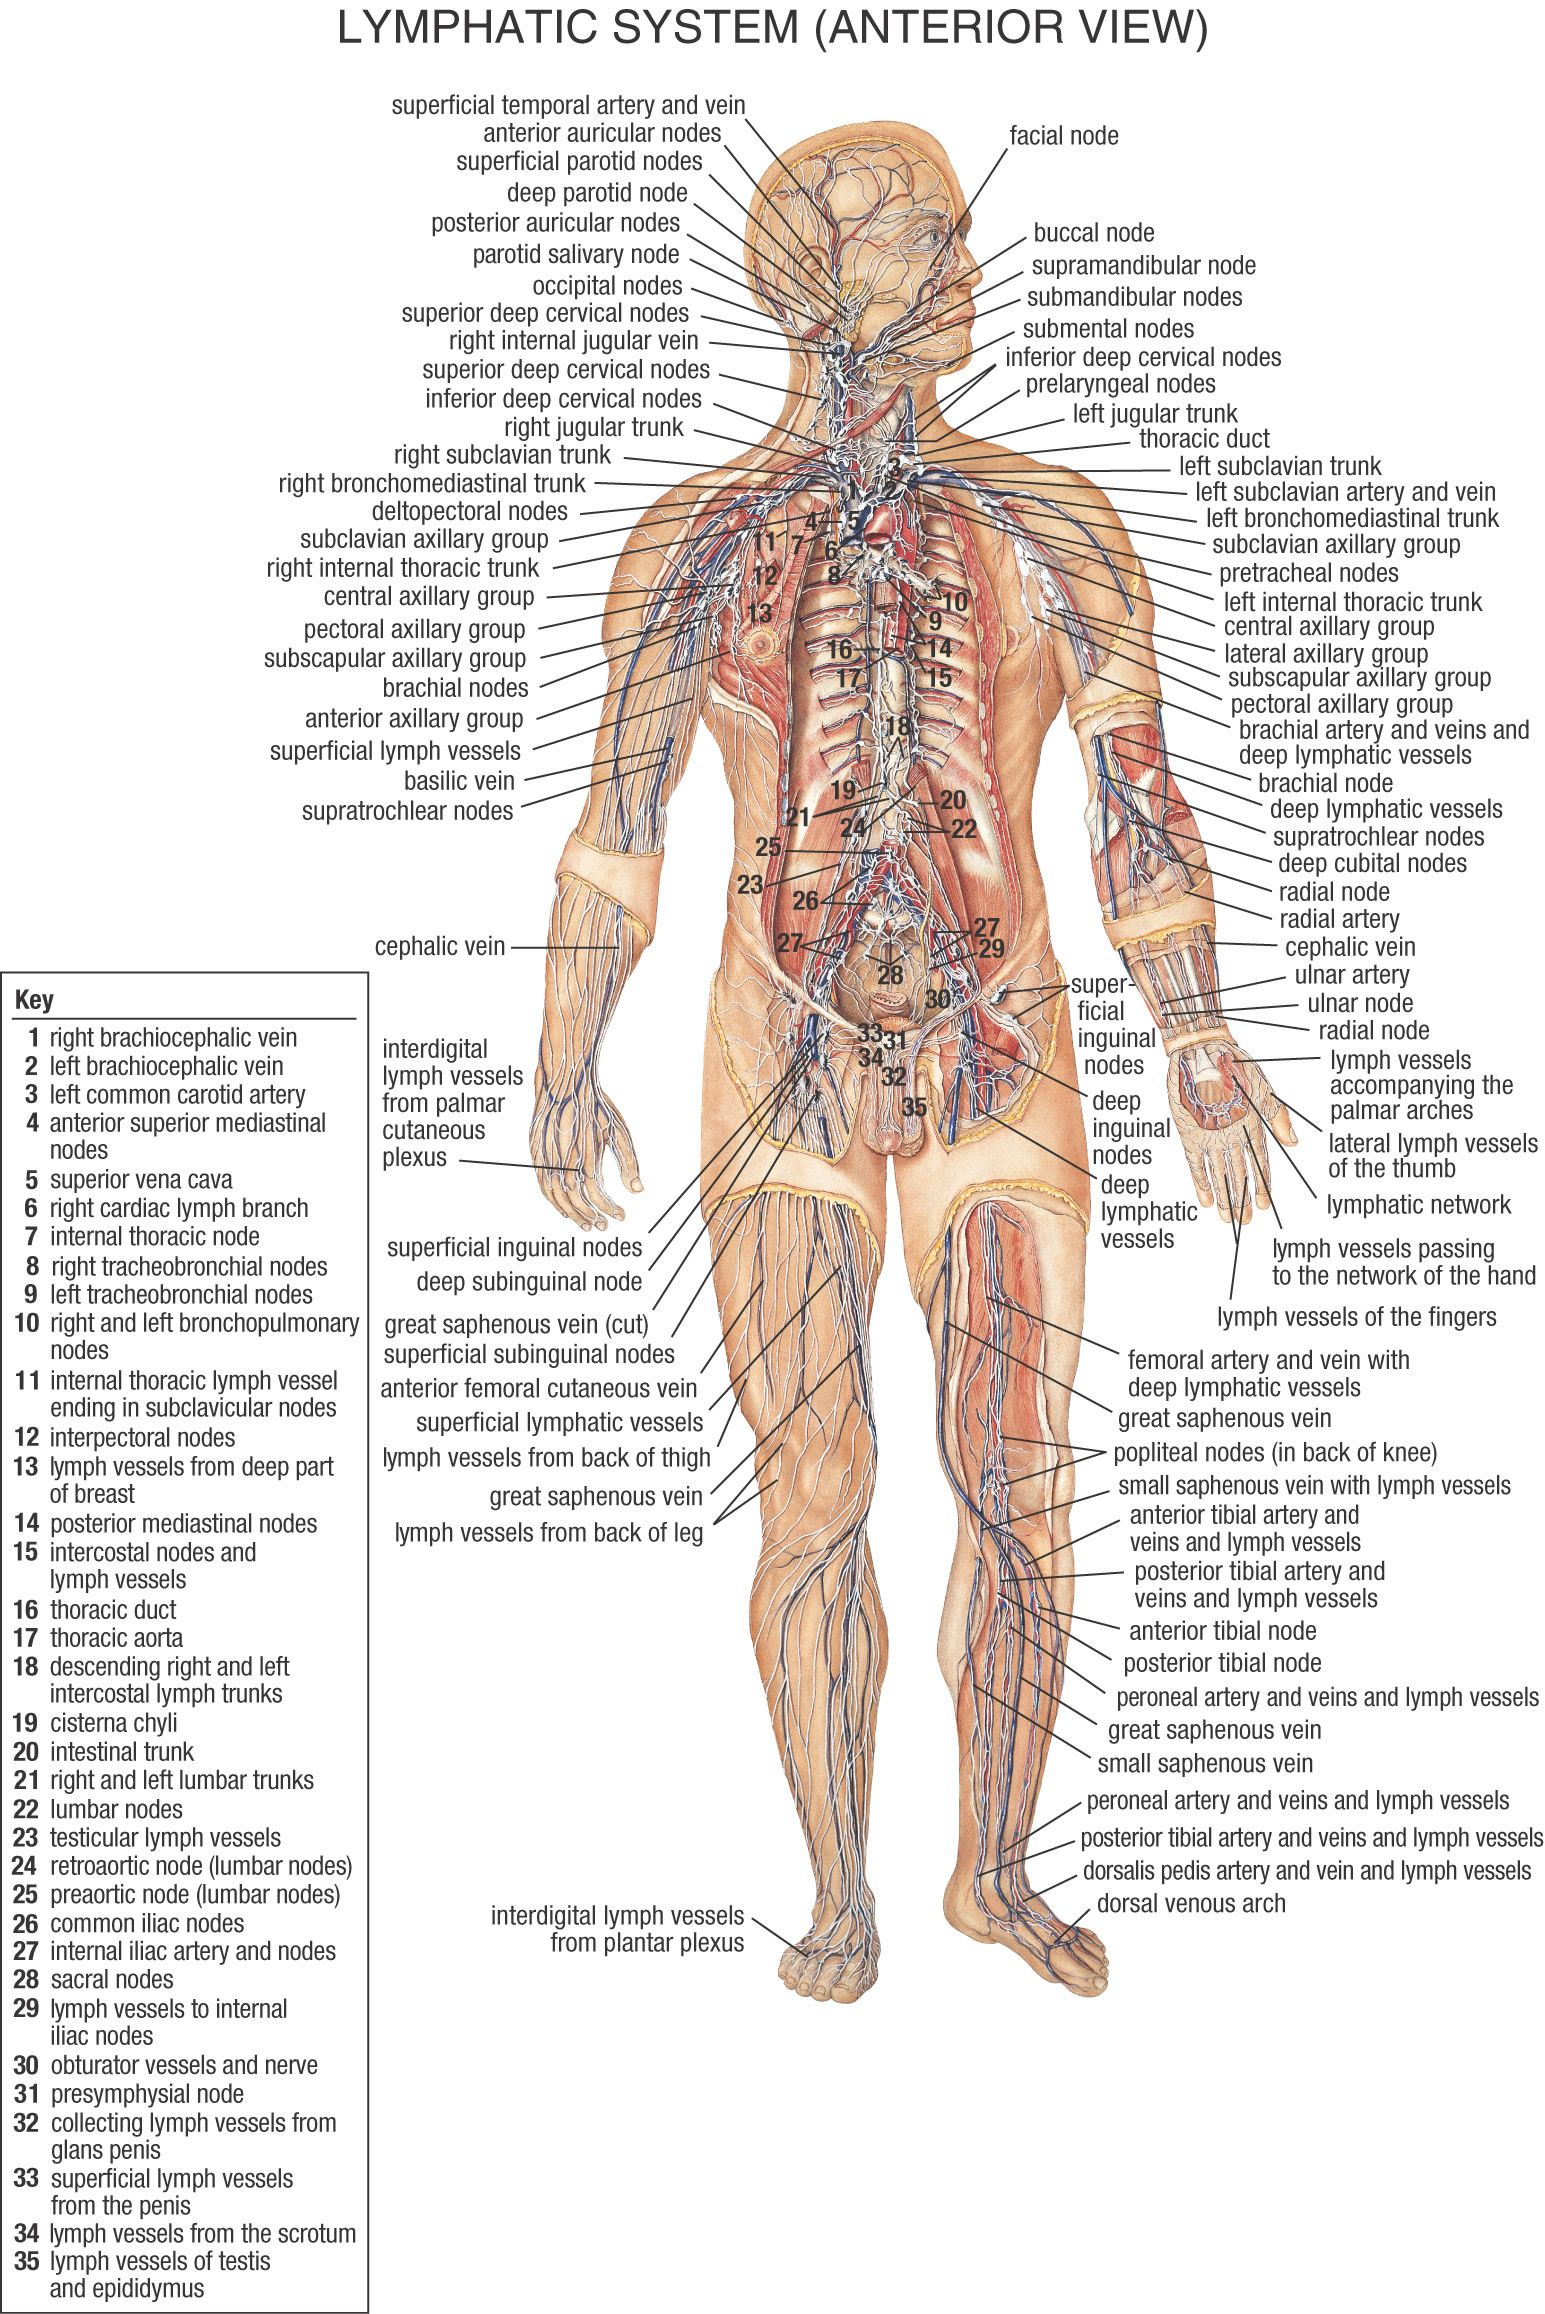 The Human Body Lymphatic System For The Latest Operating Theatre